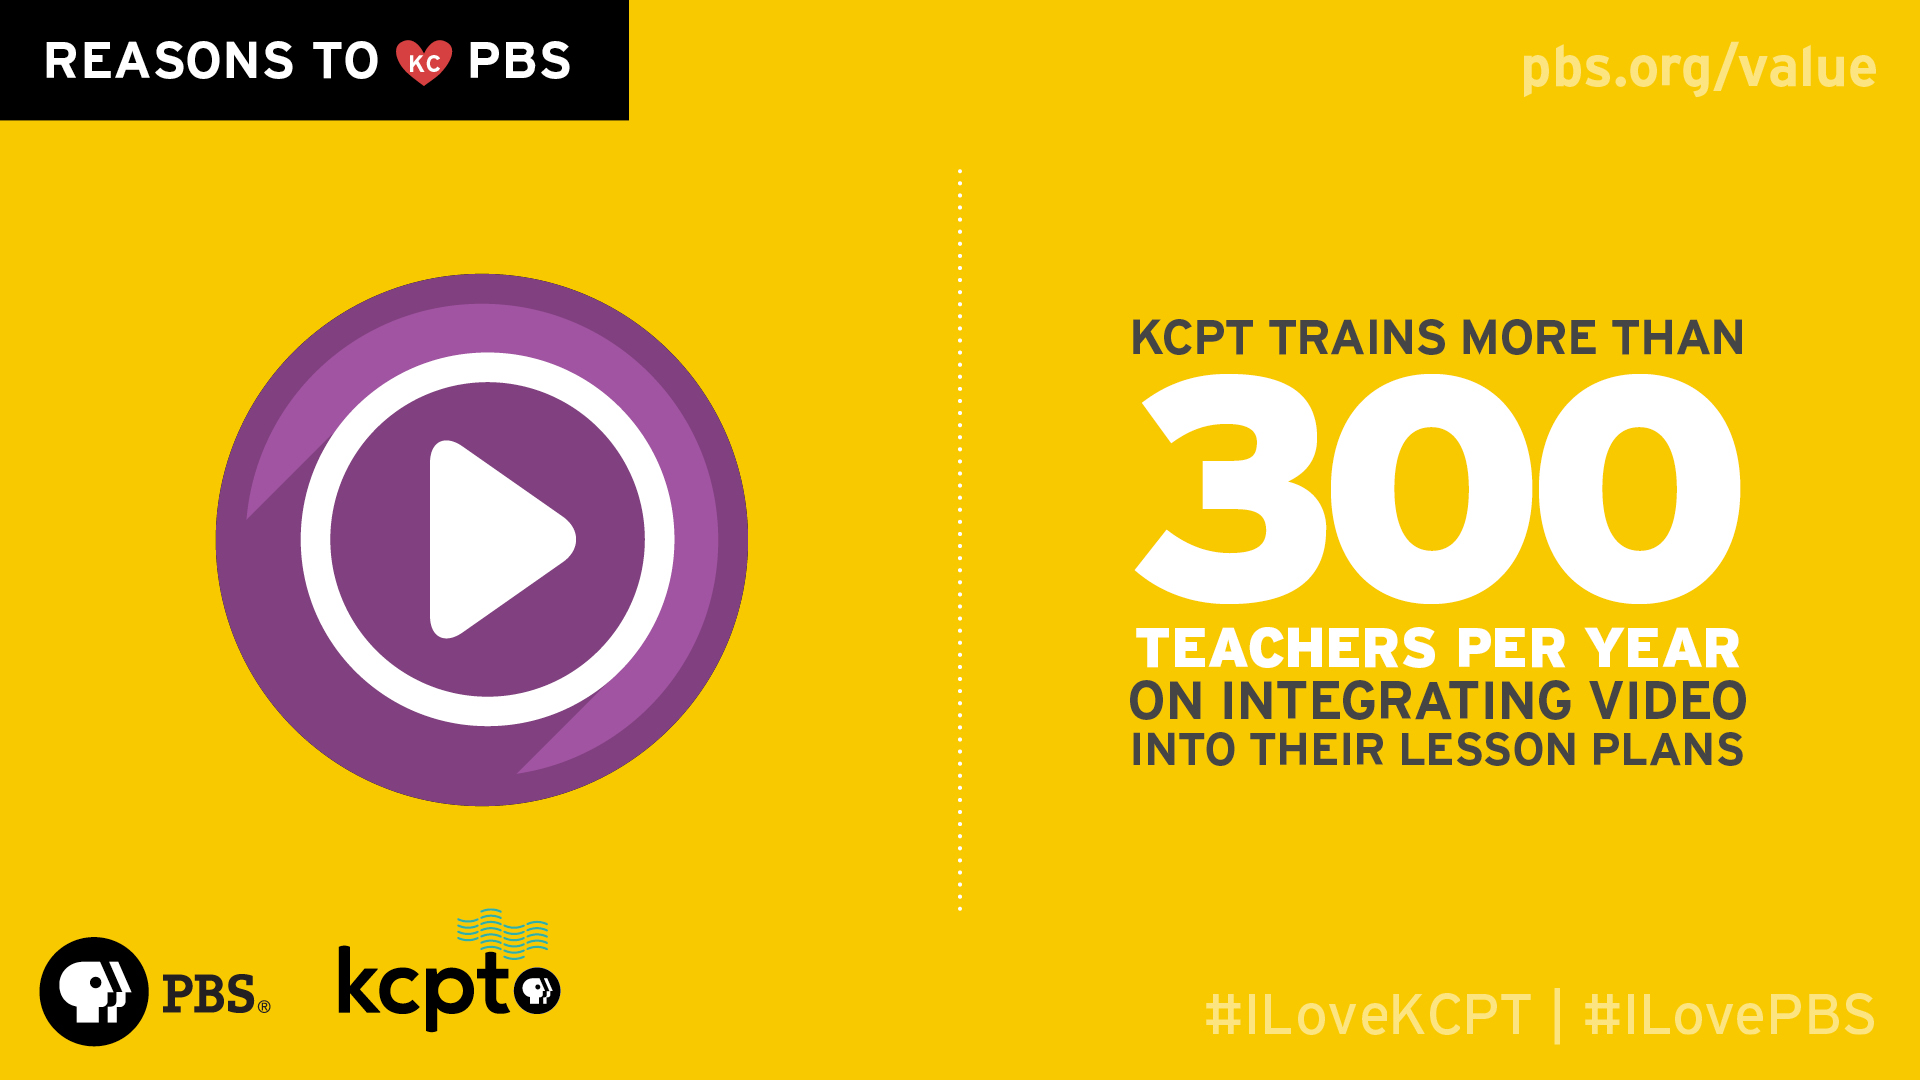 KCPT trains more than 300 teachers per year on integrating video into their lesson plans.